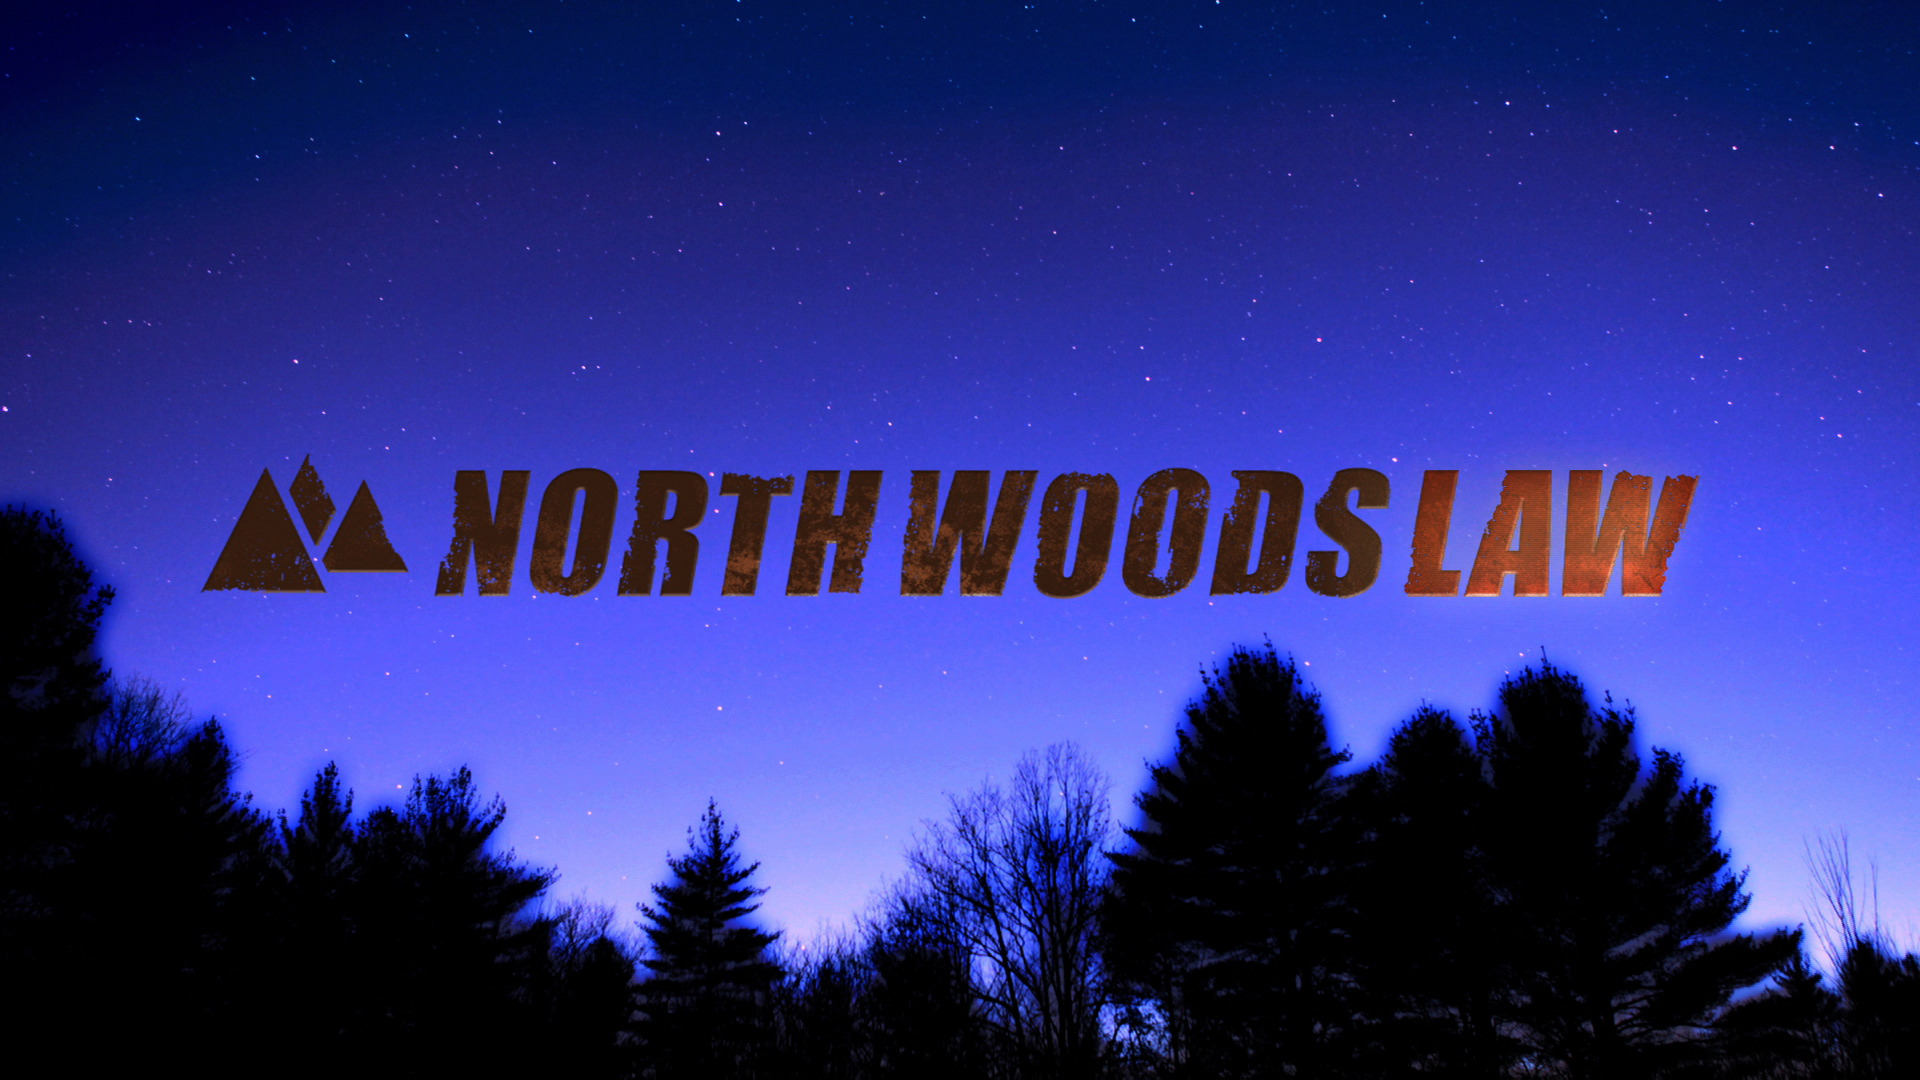 Animal Planet Wallpaper North Woods Law